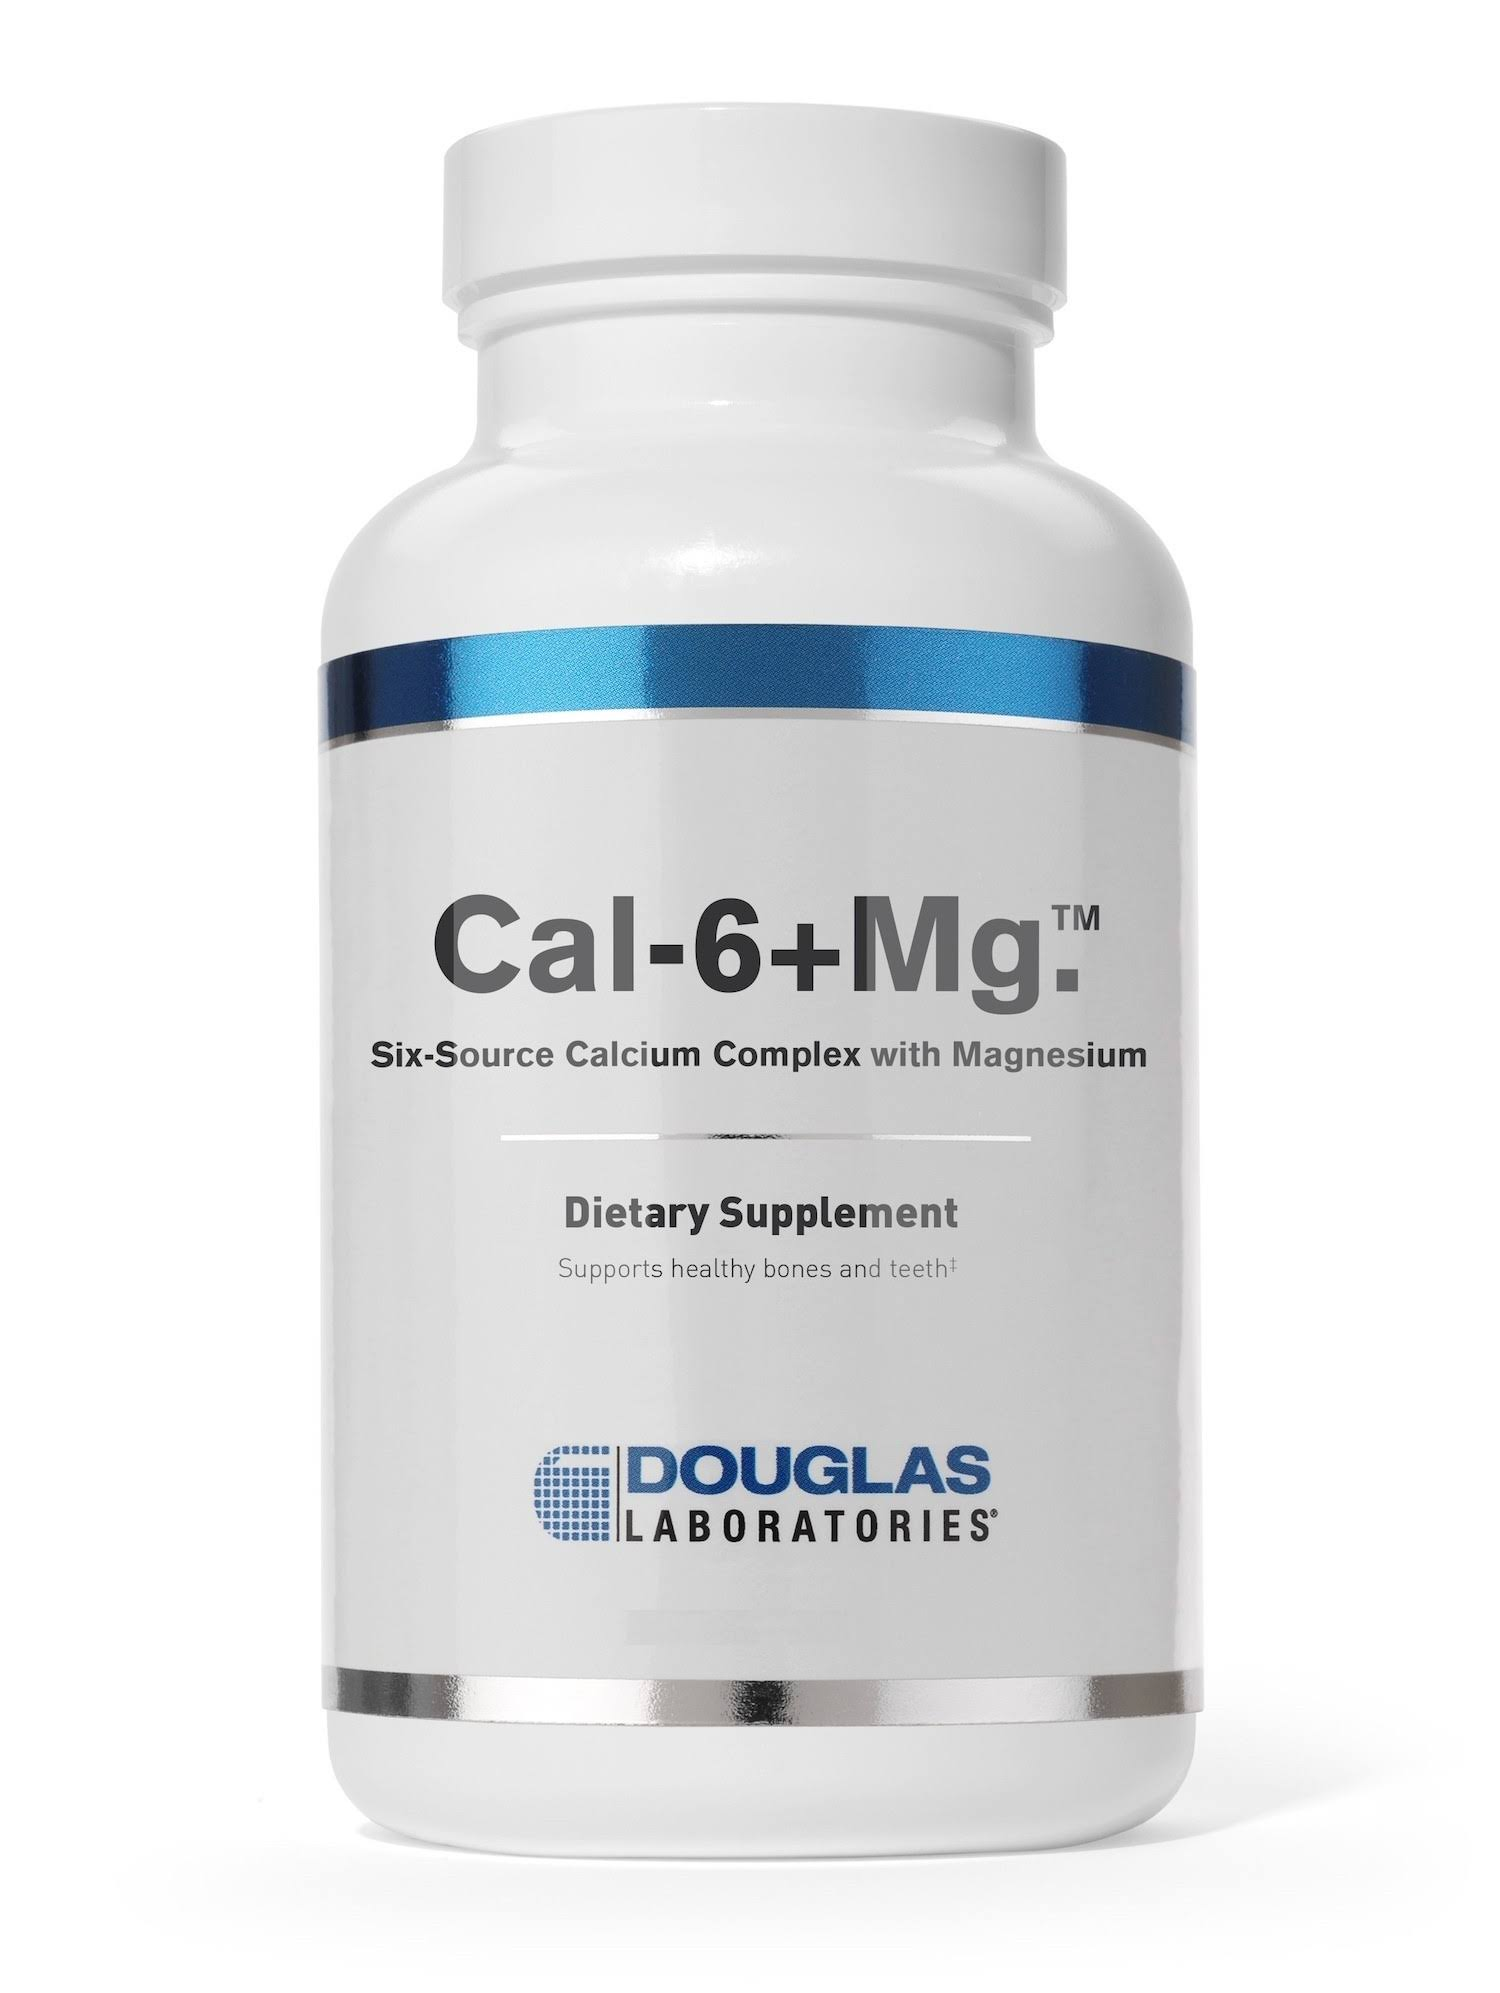 Douglas Laboratories Cal-6 + Mg Supplement - 90 Tablets